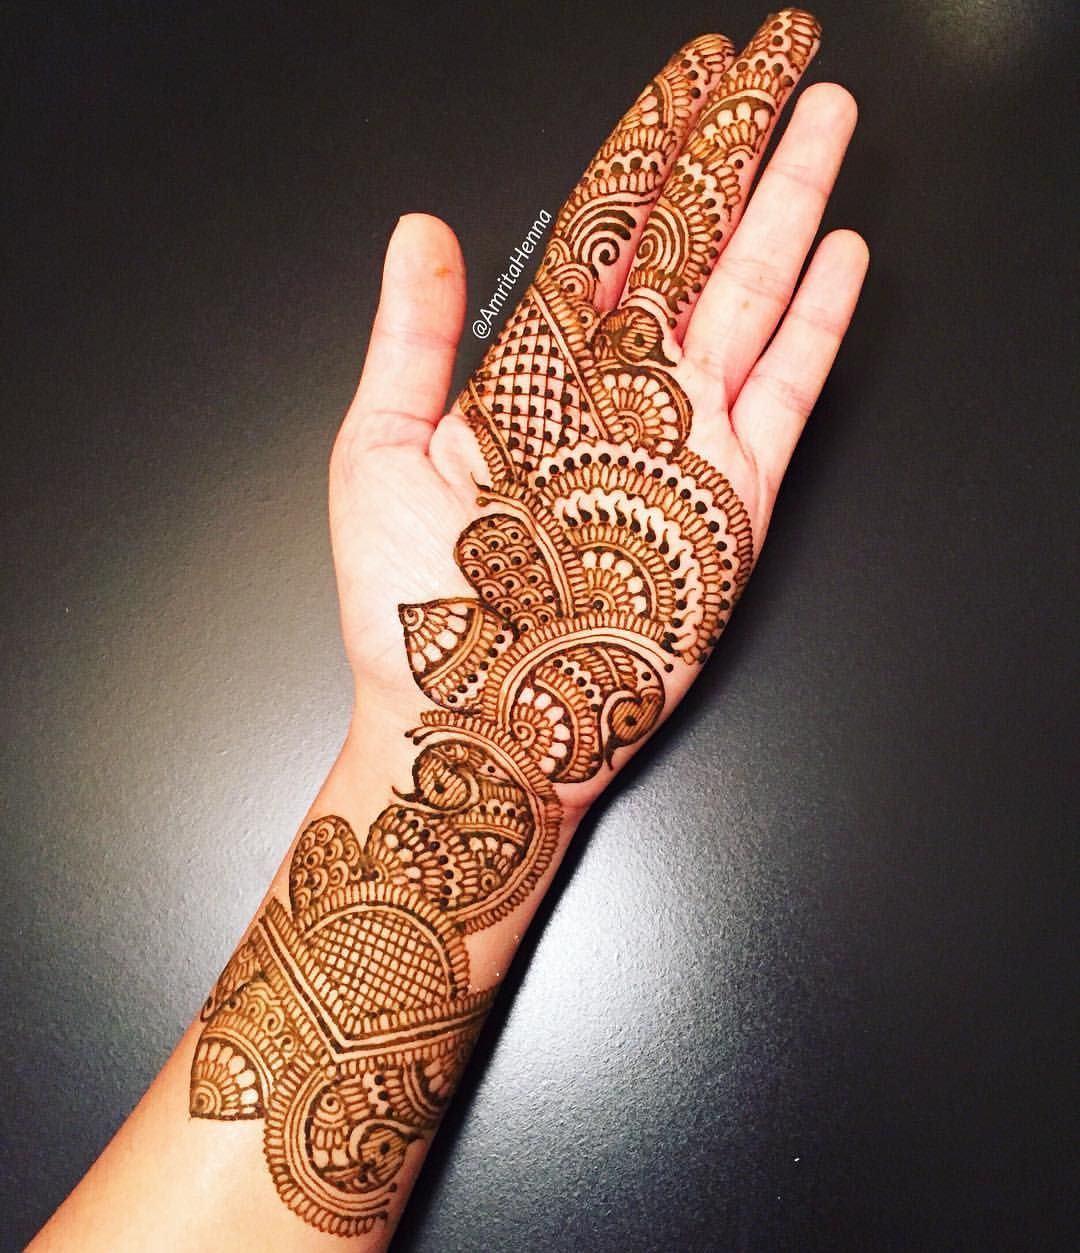 Websit mehndi art designs design pictures henna tattoo also  mean wow continuing the daydreaming pinterest rh br